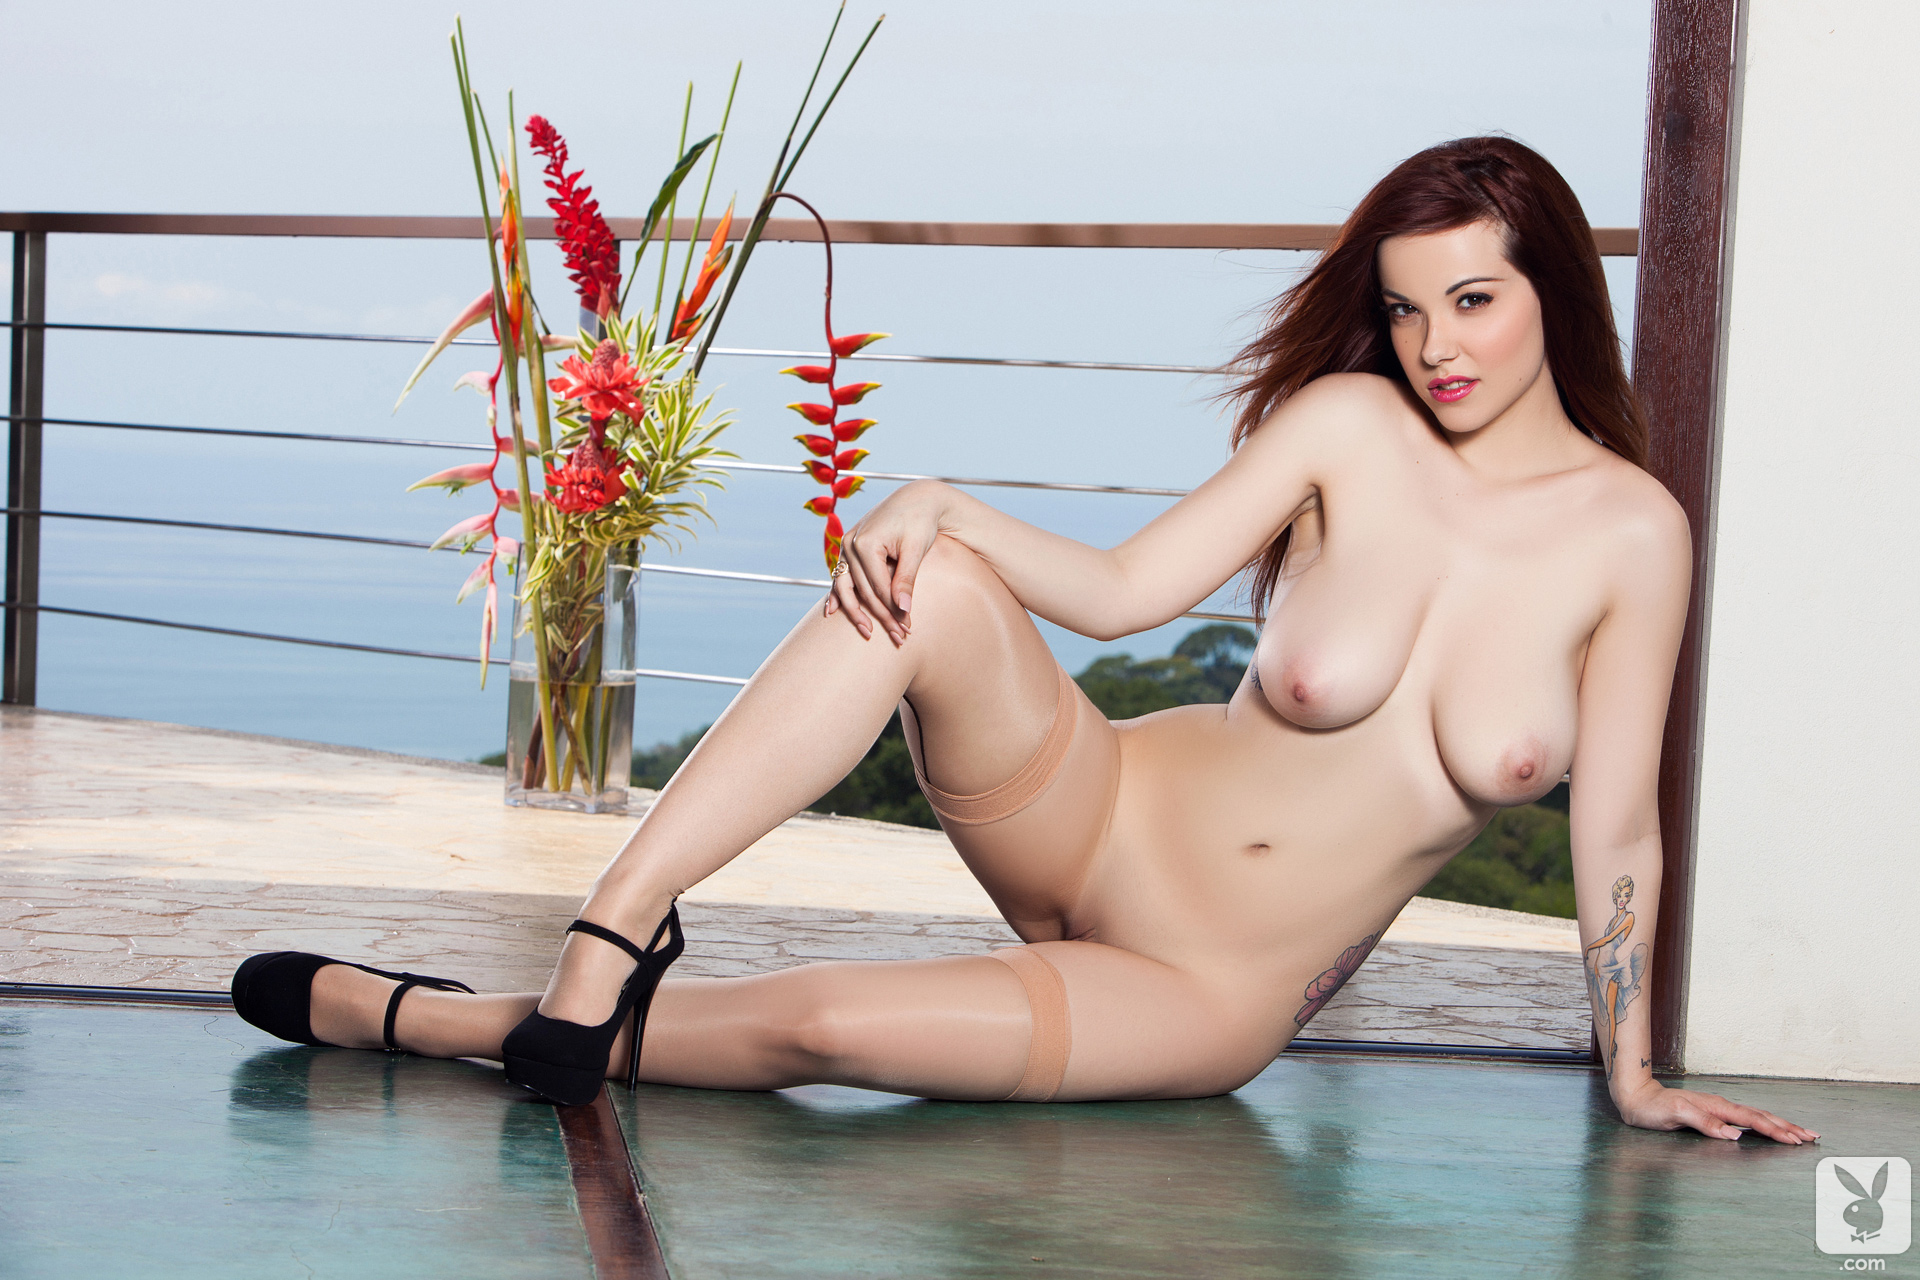 i want to be a crossdresser #ElizabethMarxs #Beautiful #sexy #hot #cute #LoveofMyLife #BlackoutClassic #redhair #stockings #heels #tattoos #pussy #tits #bigtits #legs